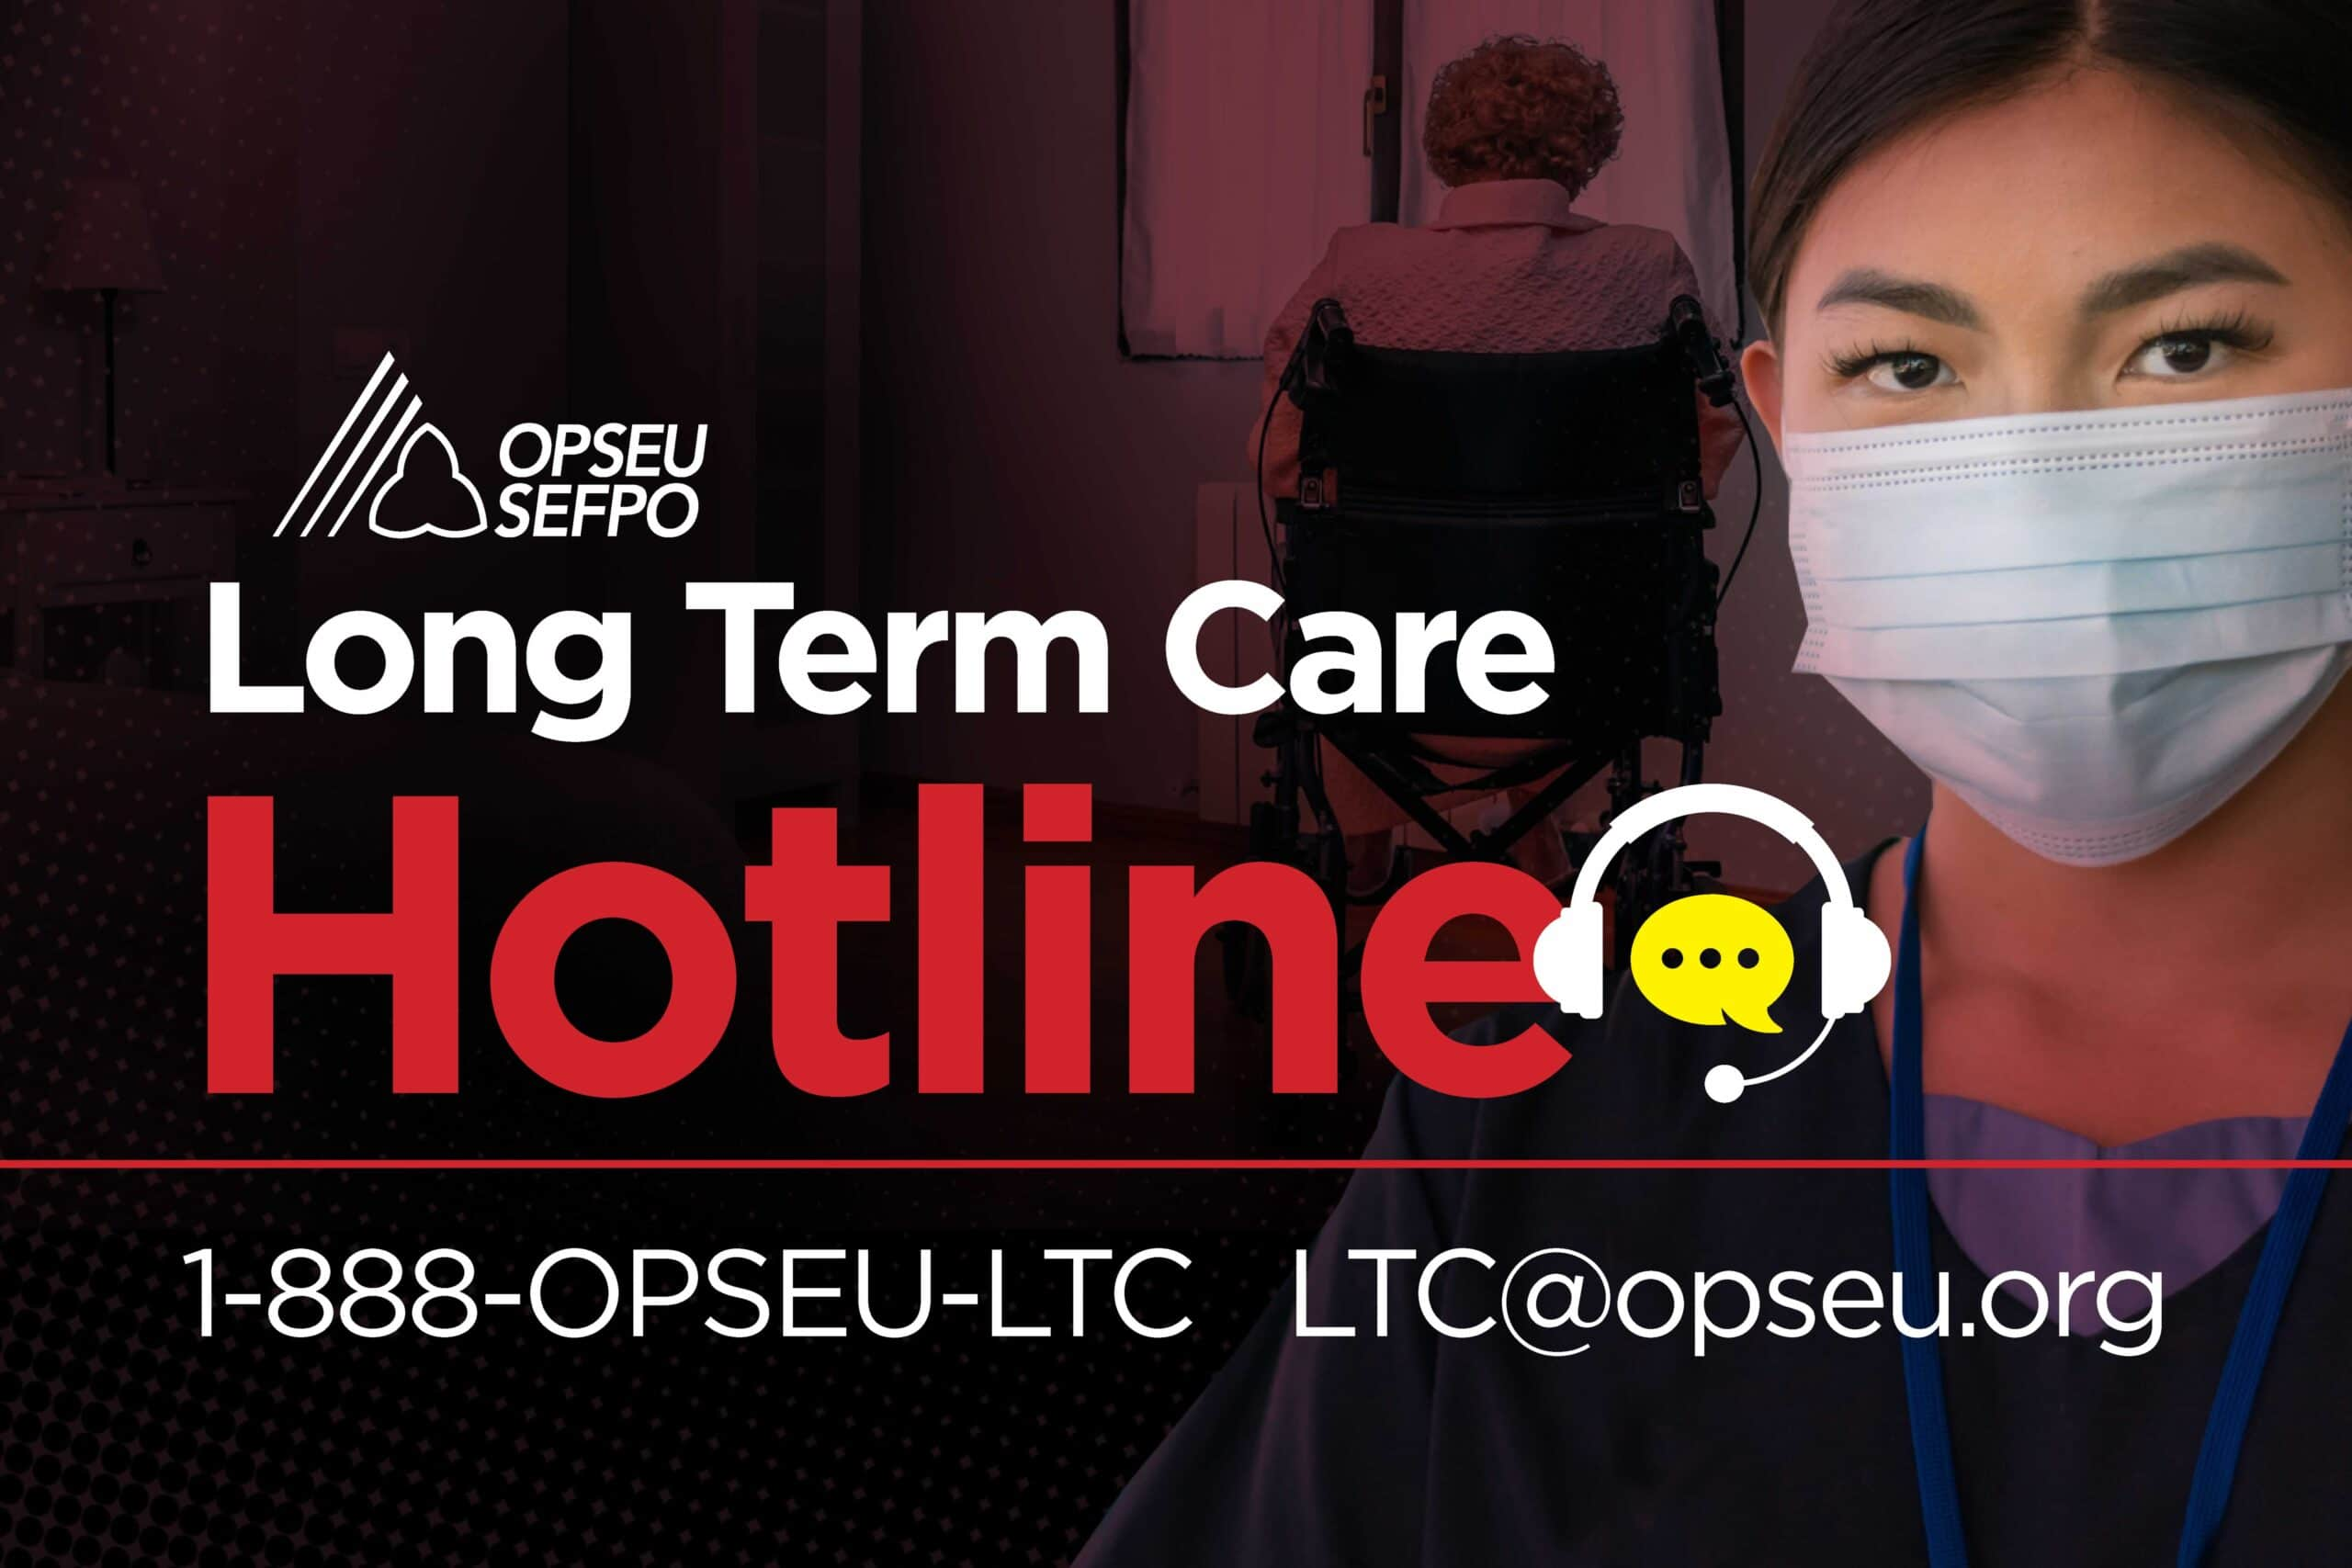 Long-term care members: Tell us your stories from the front lines